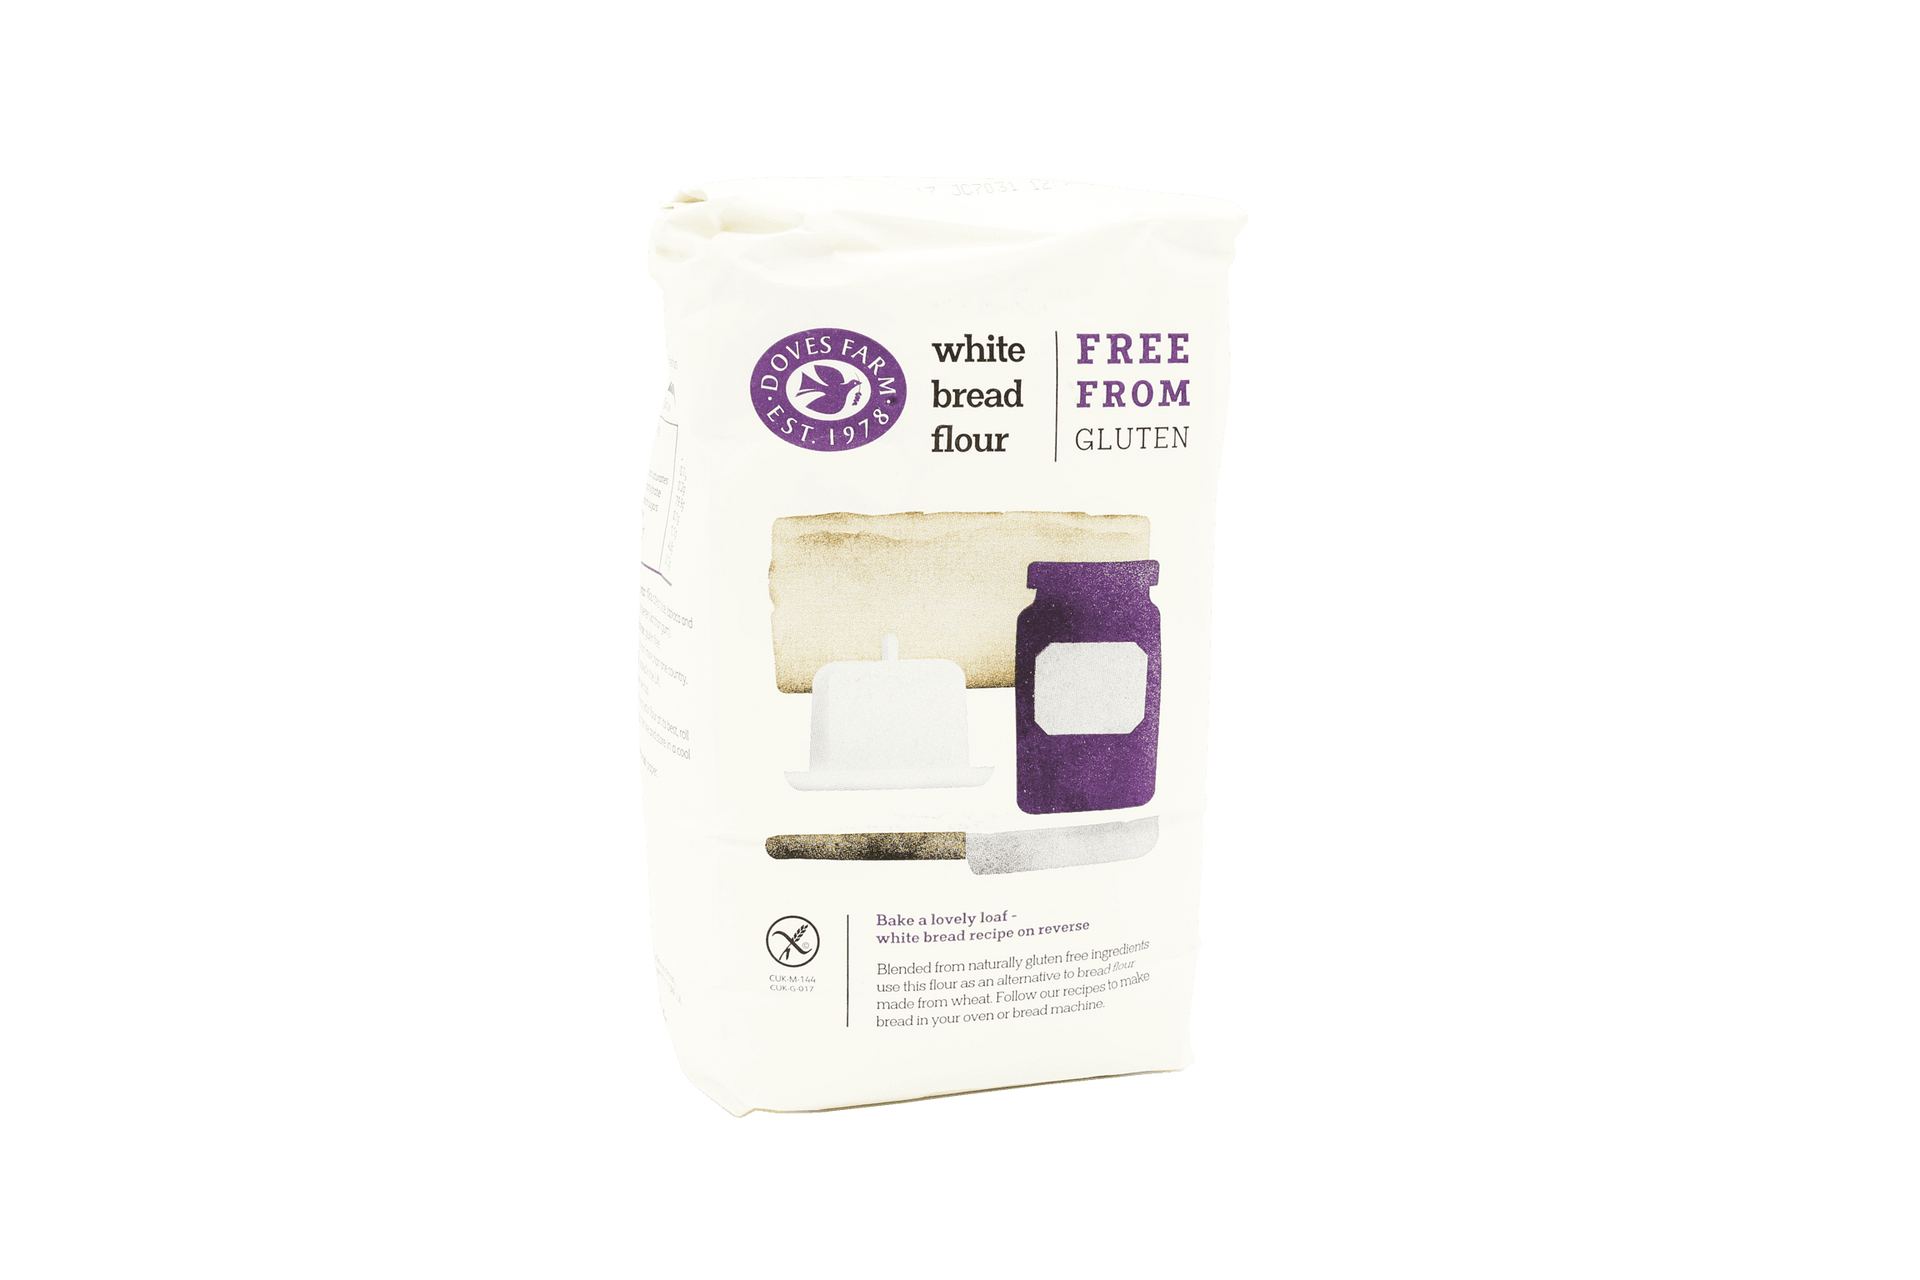 White bread flour